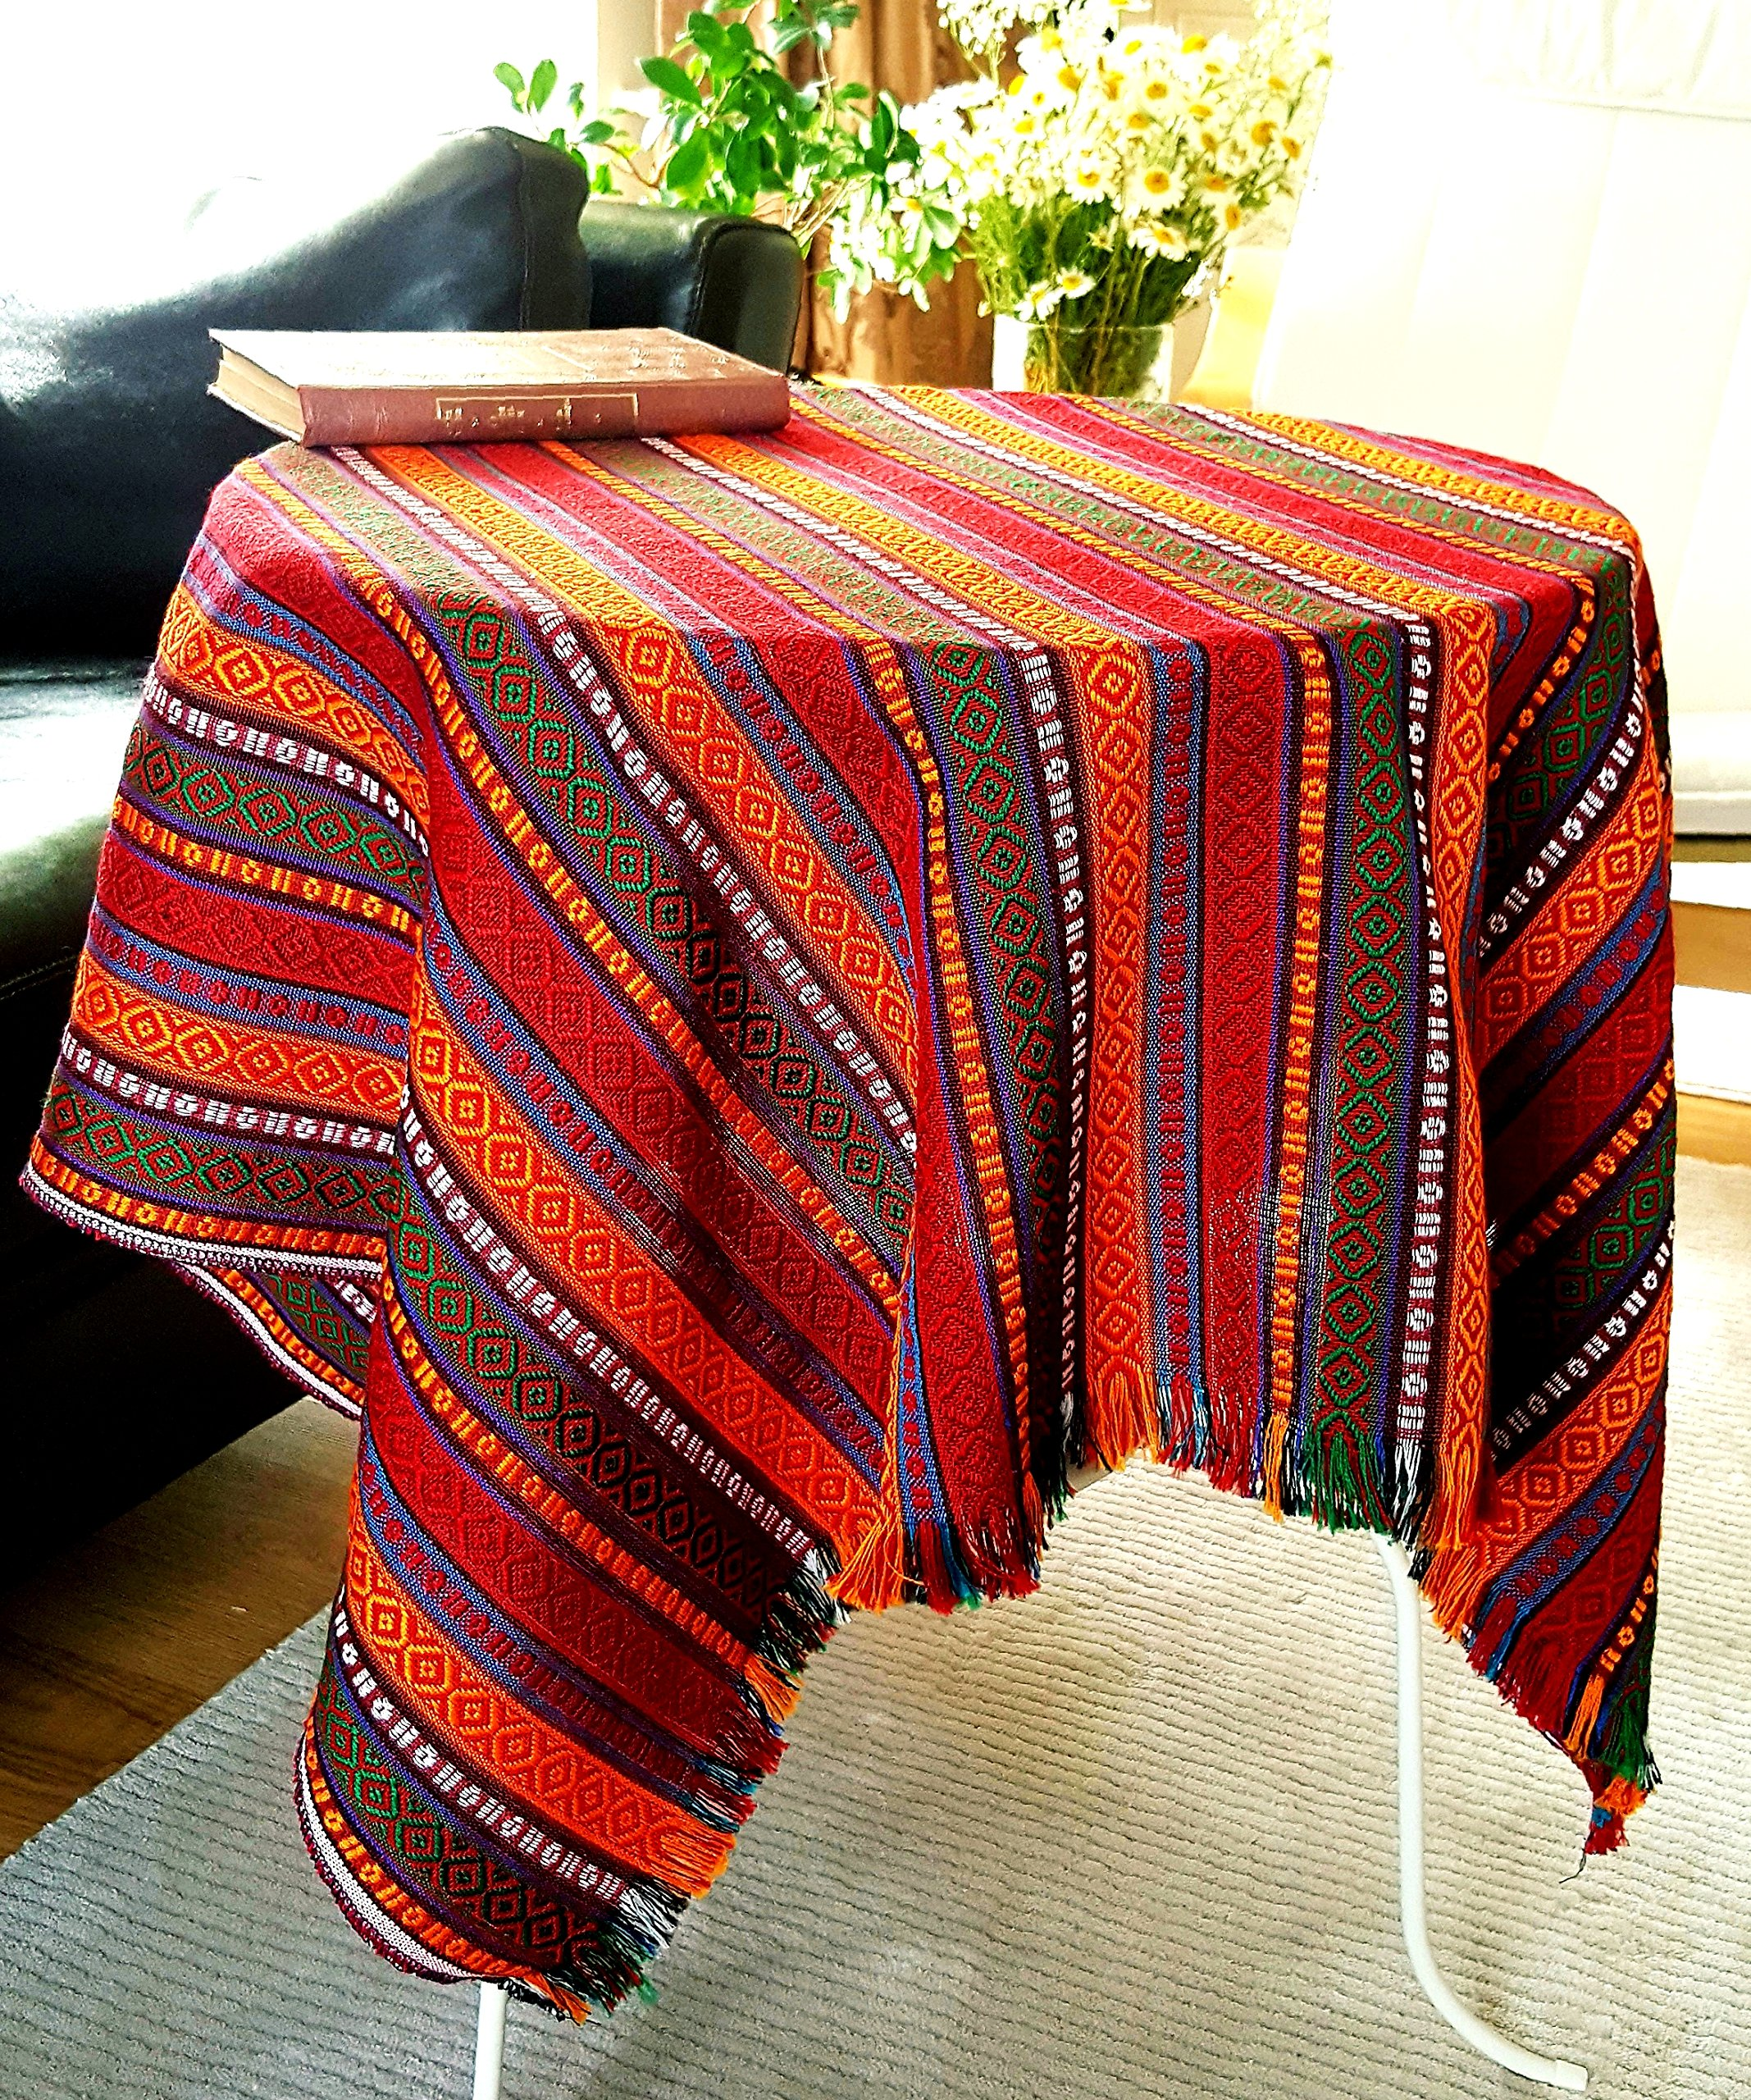 Secret Sea Collection - Ethnic Pattern Square Tablecloth, Natural Dye Colors, Perfect for Side & End Tables, Square Tables, Picnic Tables or Picnic Tablecloth (40'' x 40'', Hot Chili Sauce) - This bright and fun tablecloth is great for indoors or outdoors. Material: Cotton acrylic yarn , Sizes: 40x40 inches( 100x100 cm), Reversible, Made in Turkey. Available in different color and size variations. Two edges have natural fringes. - tablecloths, kitchen-dining-room-table-linens, kitchen-dining-room - A1wrk QD1FL -